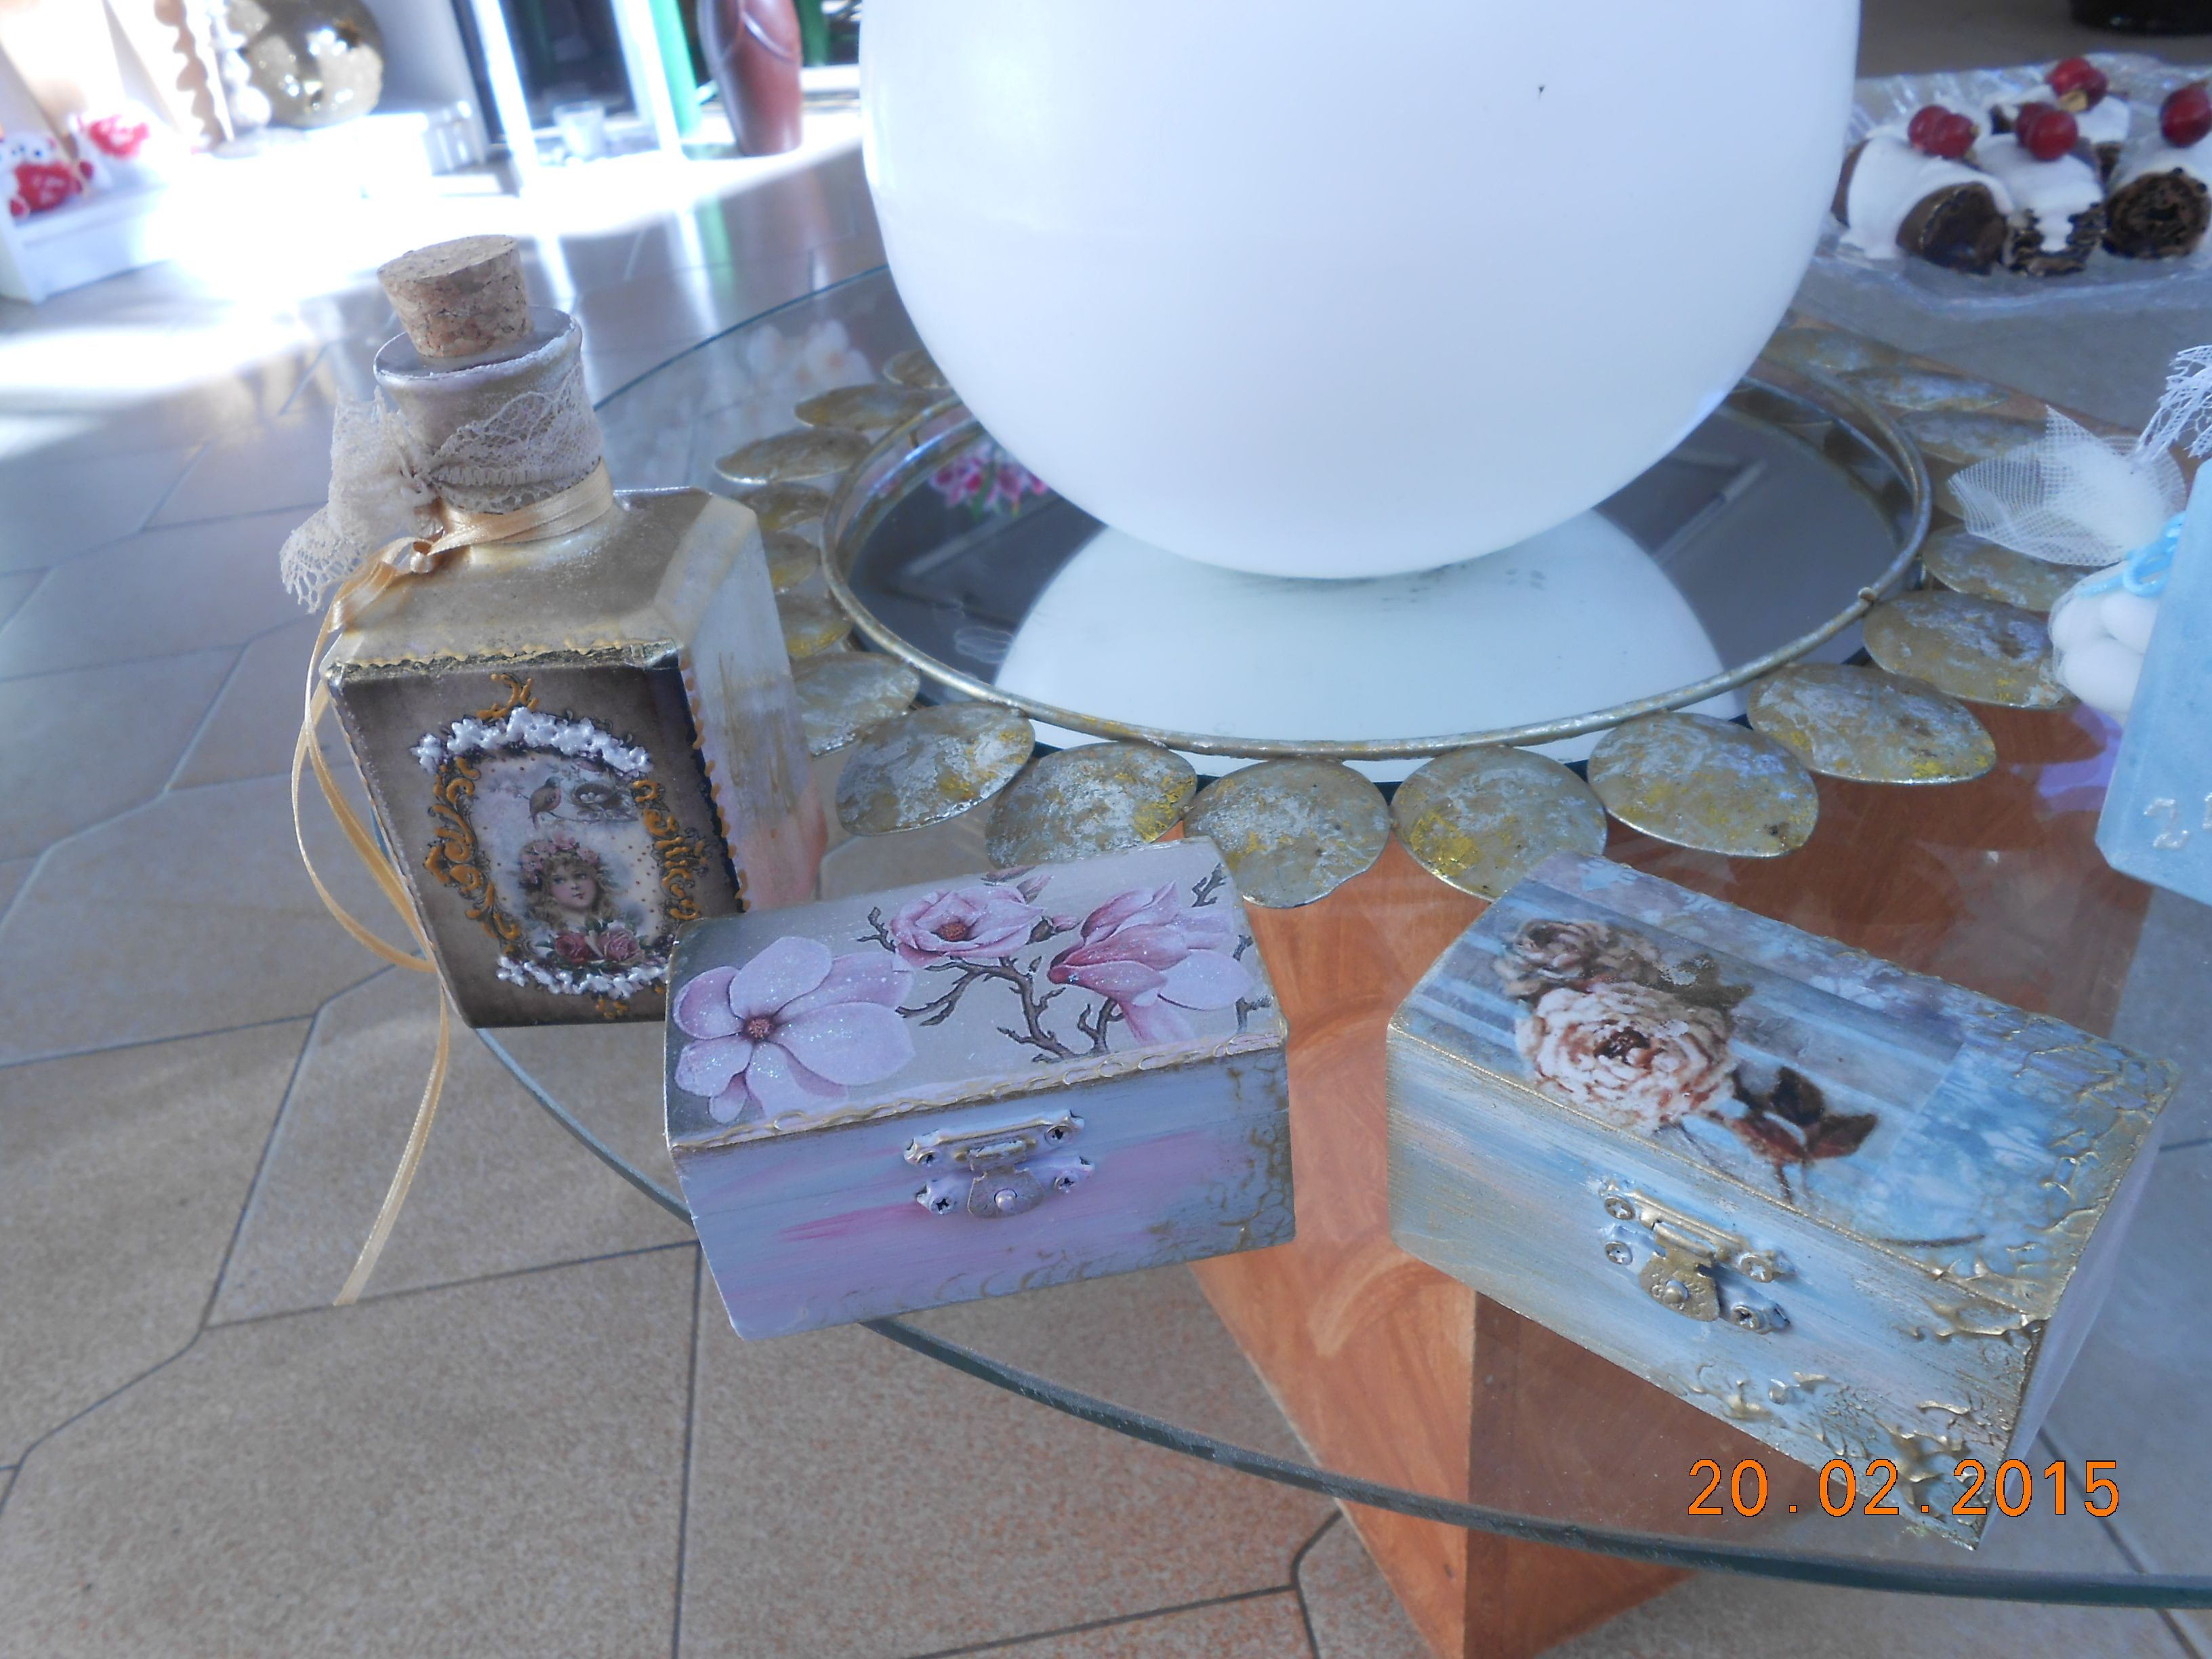 small bottle  6,5x6,5x13,  250  ml  and  wooden  small  boxes  9x5 , wedding  bobonieres